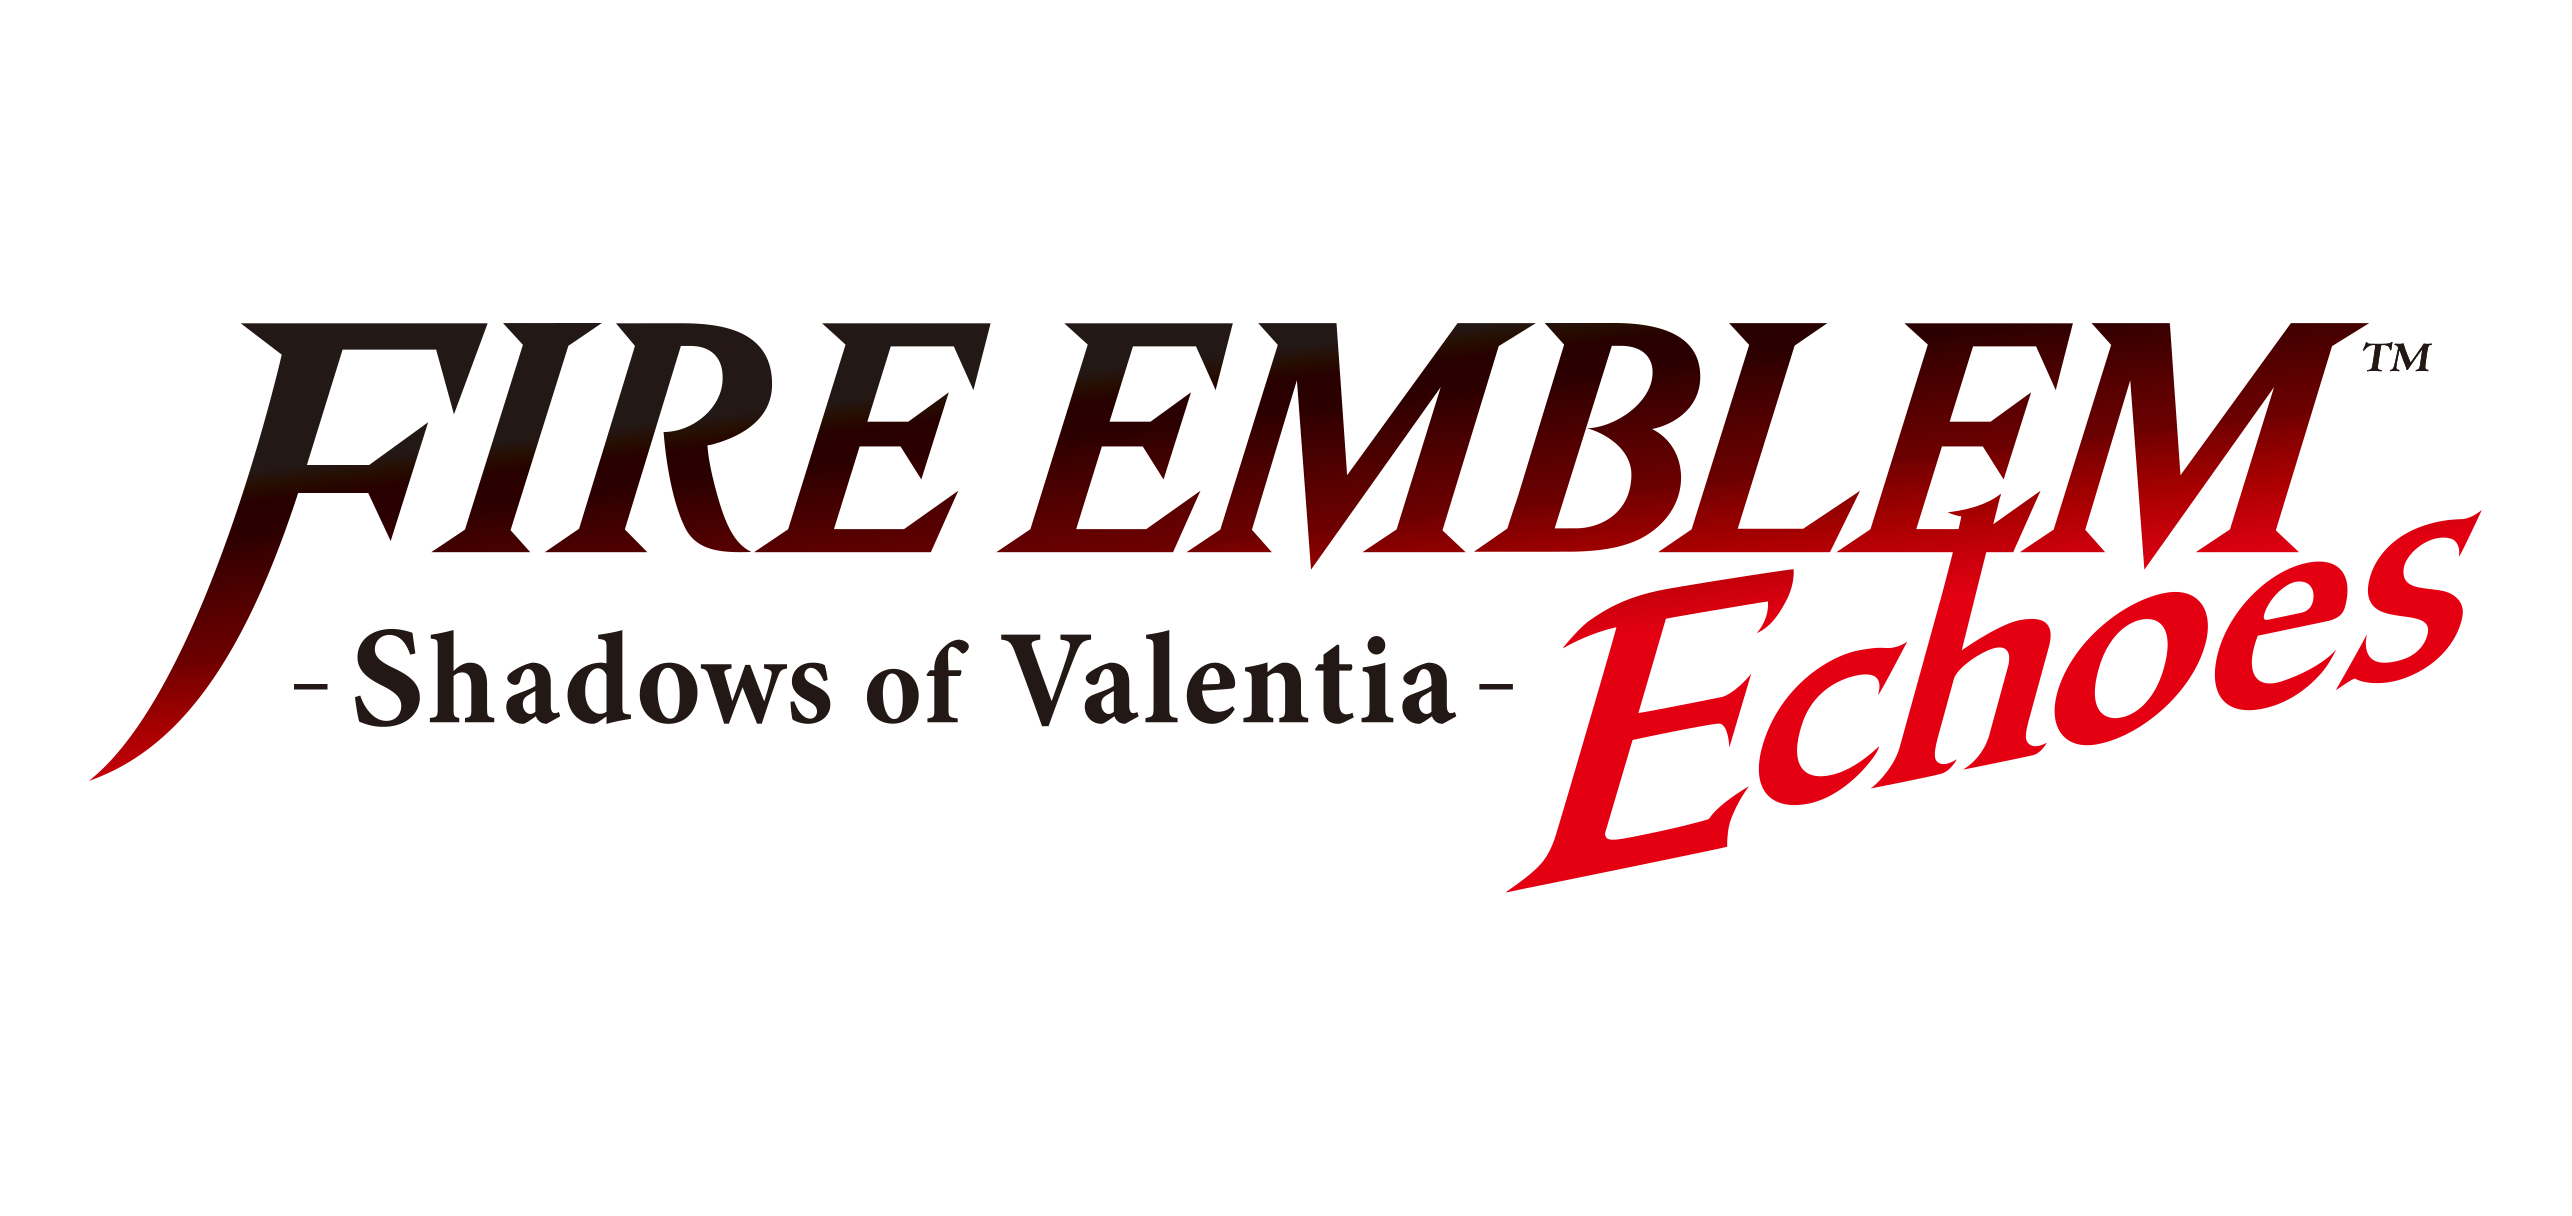 Fire Emblem Echoes: Shadows of Valentia — Wikipédia